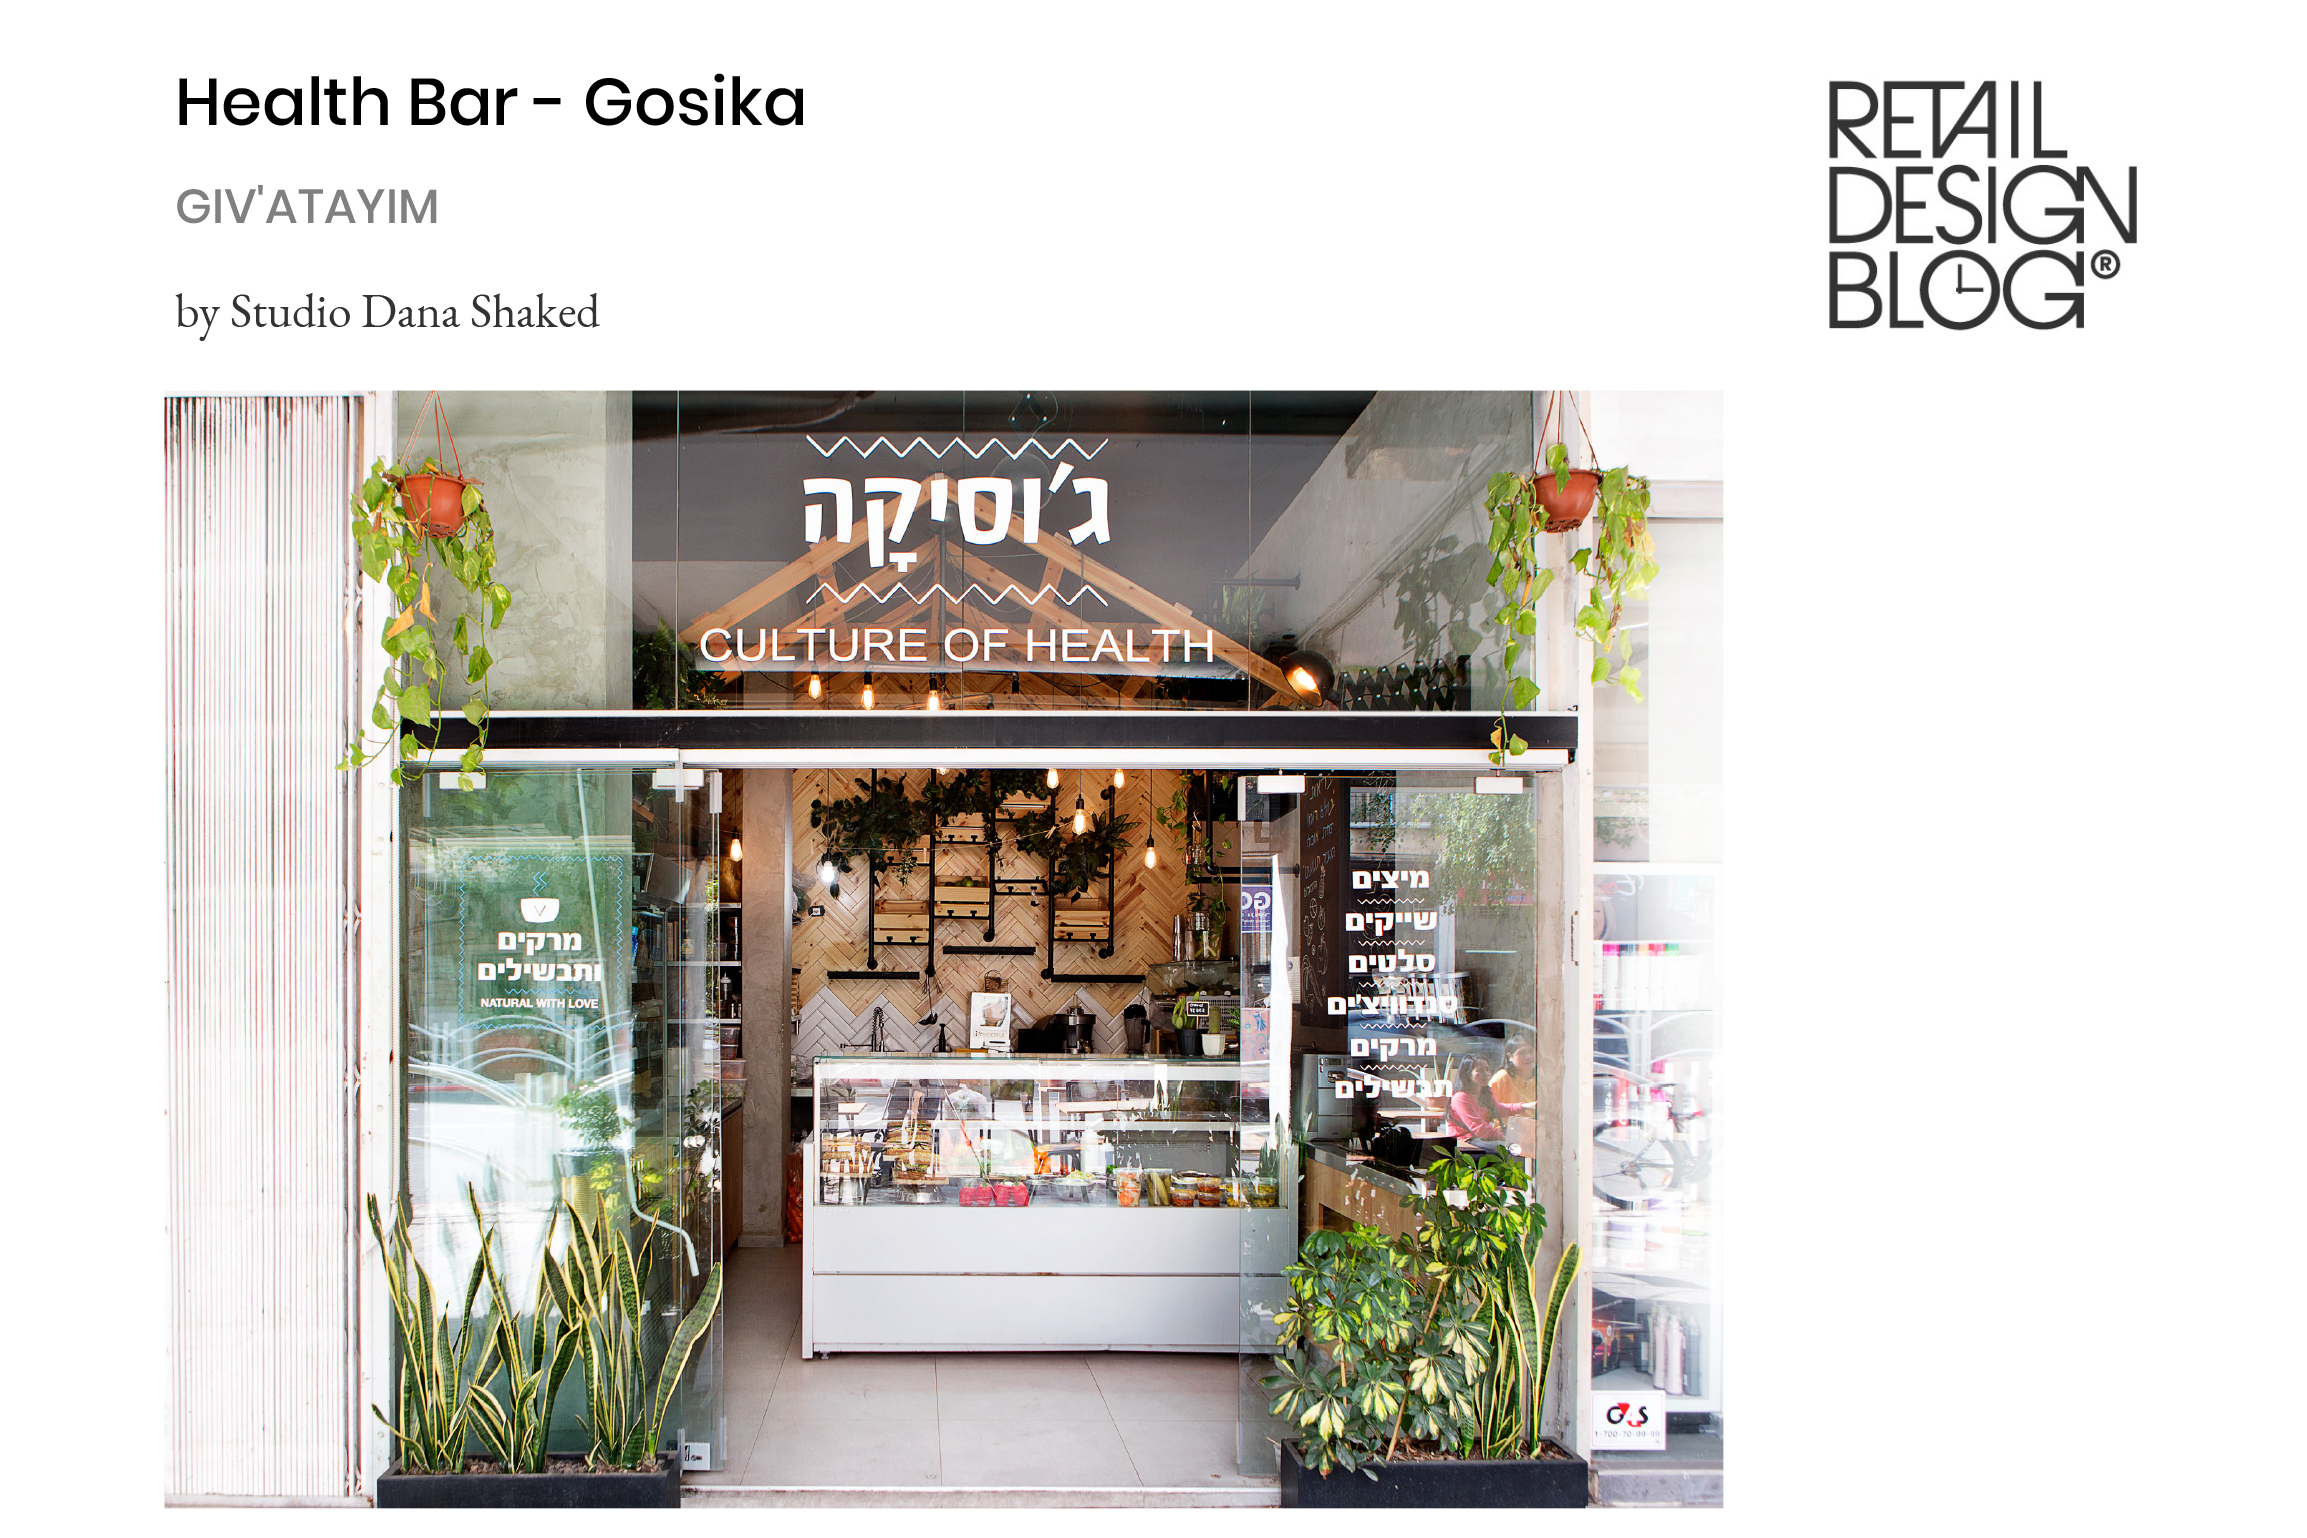 Gosika – Health Bar – Retail Design Blog